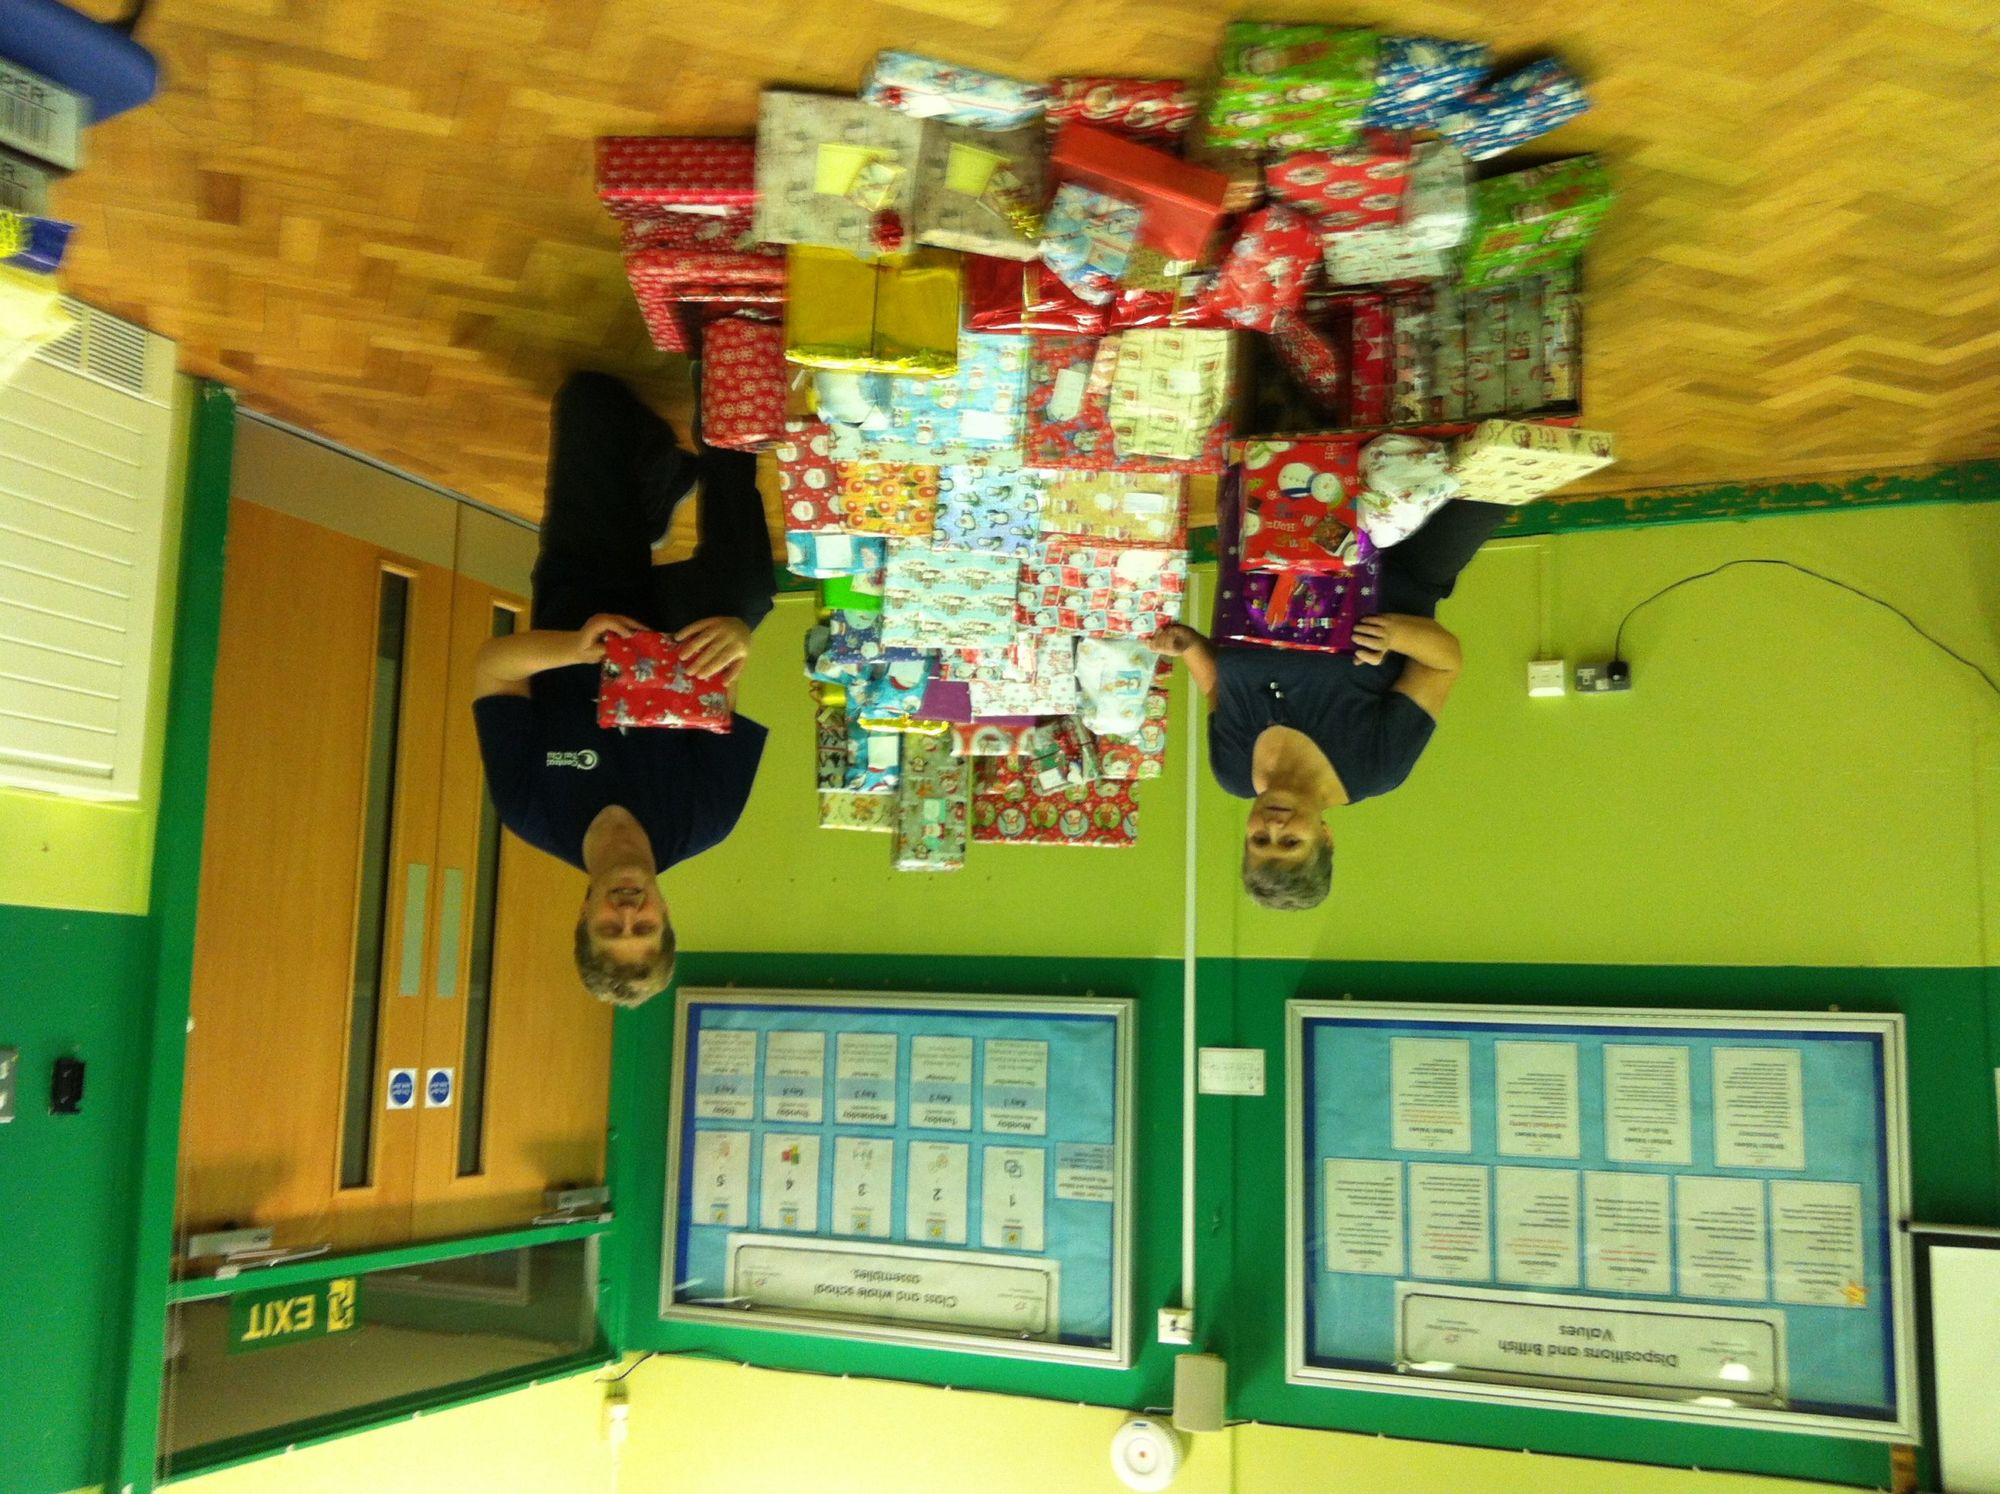 Our members just donated 203 Christmas presents for local disadvantaged Kids! Merry Christmas and Happy New Year to all. 2